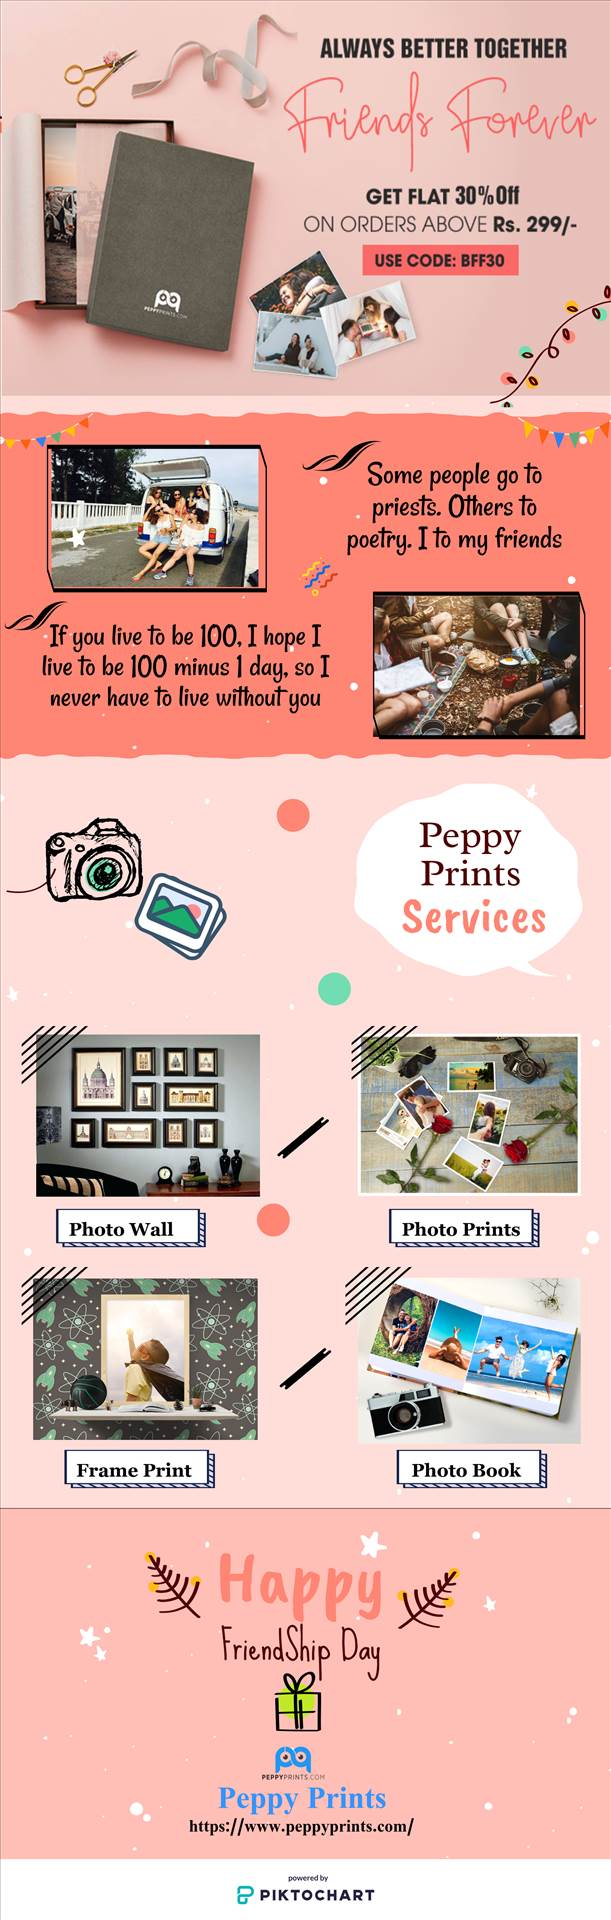 Friendship Day Gifts By Peppy Prints Looking for gifts on this Friendship-Day choose Peppy prints as we are giving flat 30% off on order above 299 rs. and use code BFF30 to avail the offer.    by peppyprints